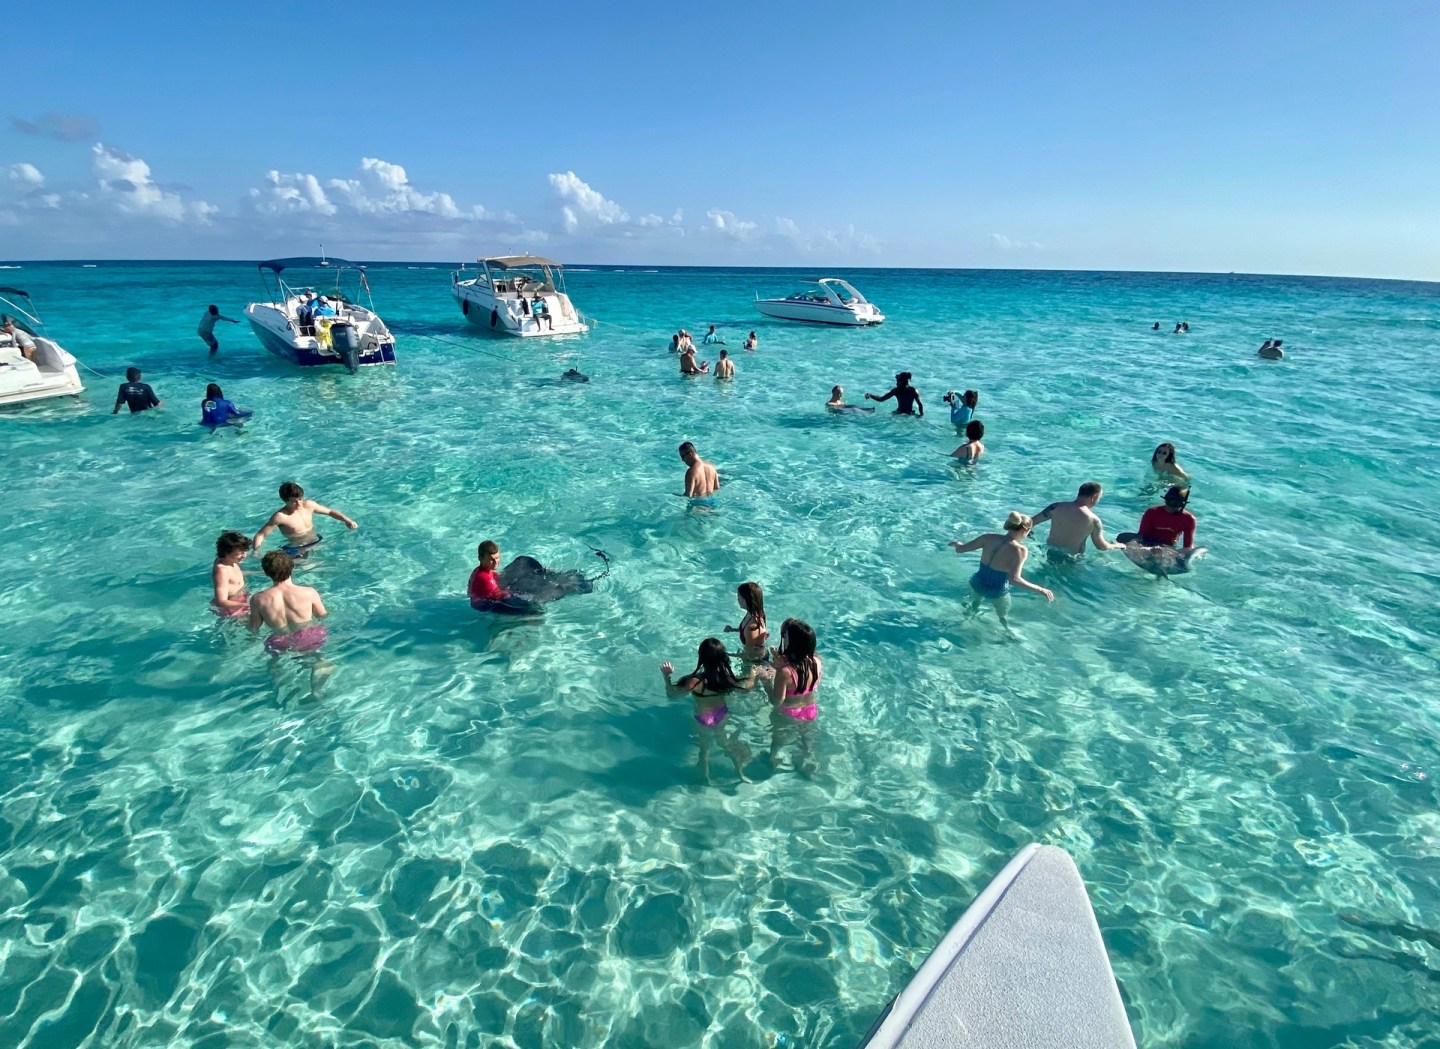 Day trip to Stingray City in Cayman Islands